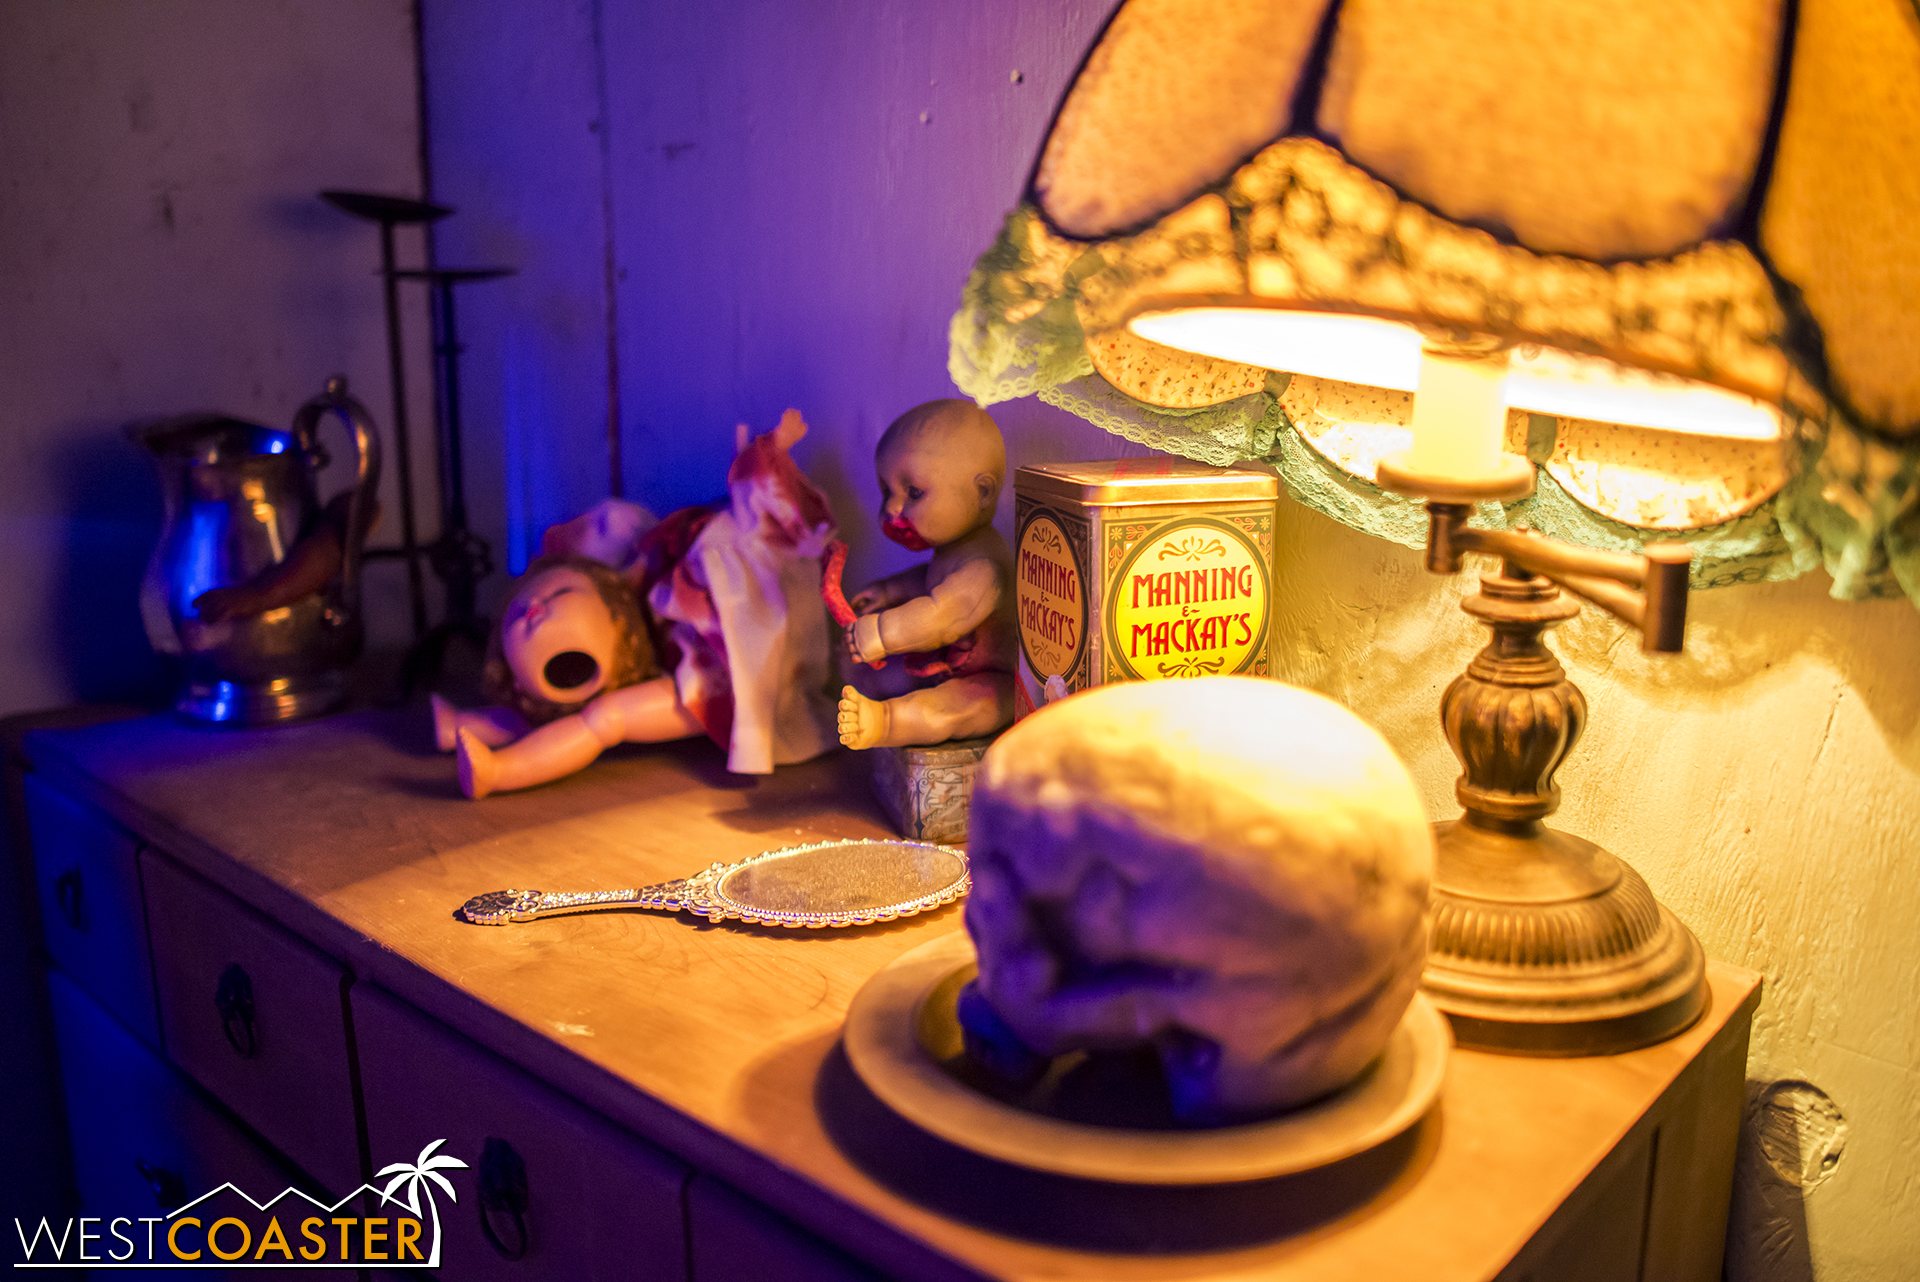 And the theming in this room, as throughout the haunted house, was fantastic.